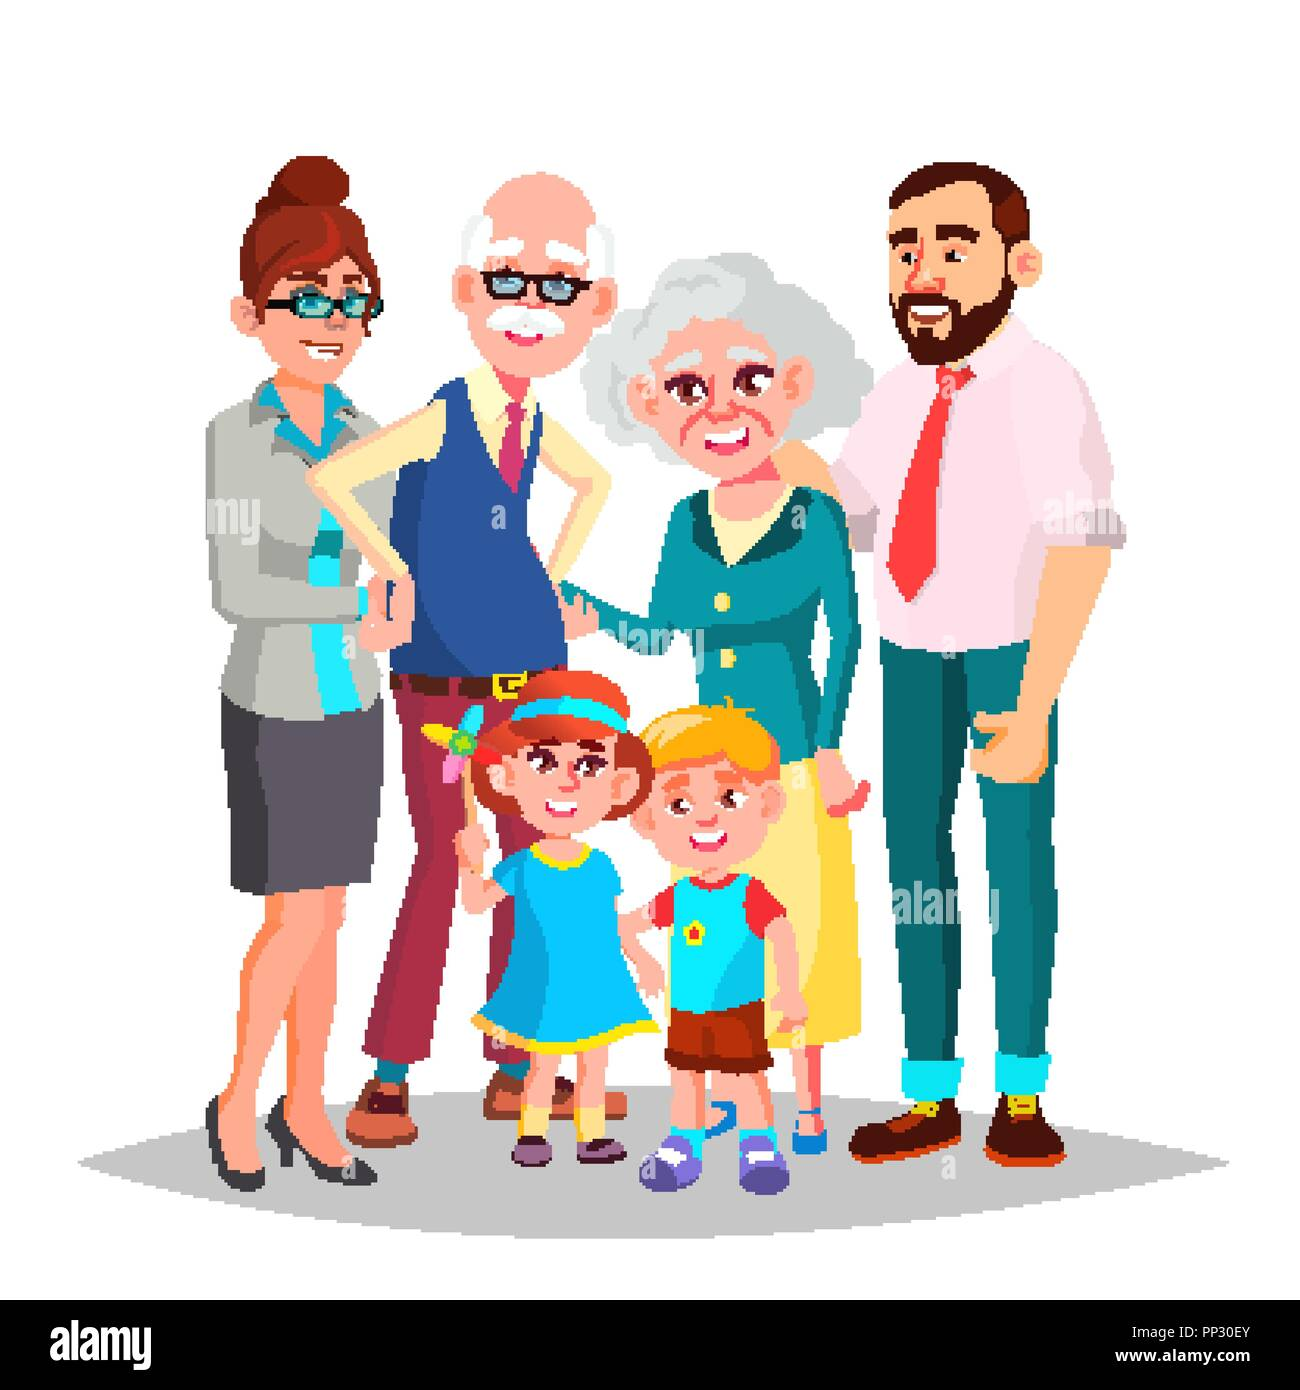 Family Vector. Mom, Dad, Children, Grandparents Together. Decoration Element. Isolated Cartoon Illustration - Stock Image